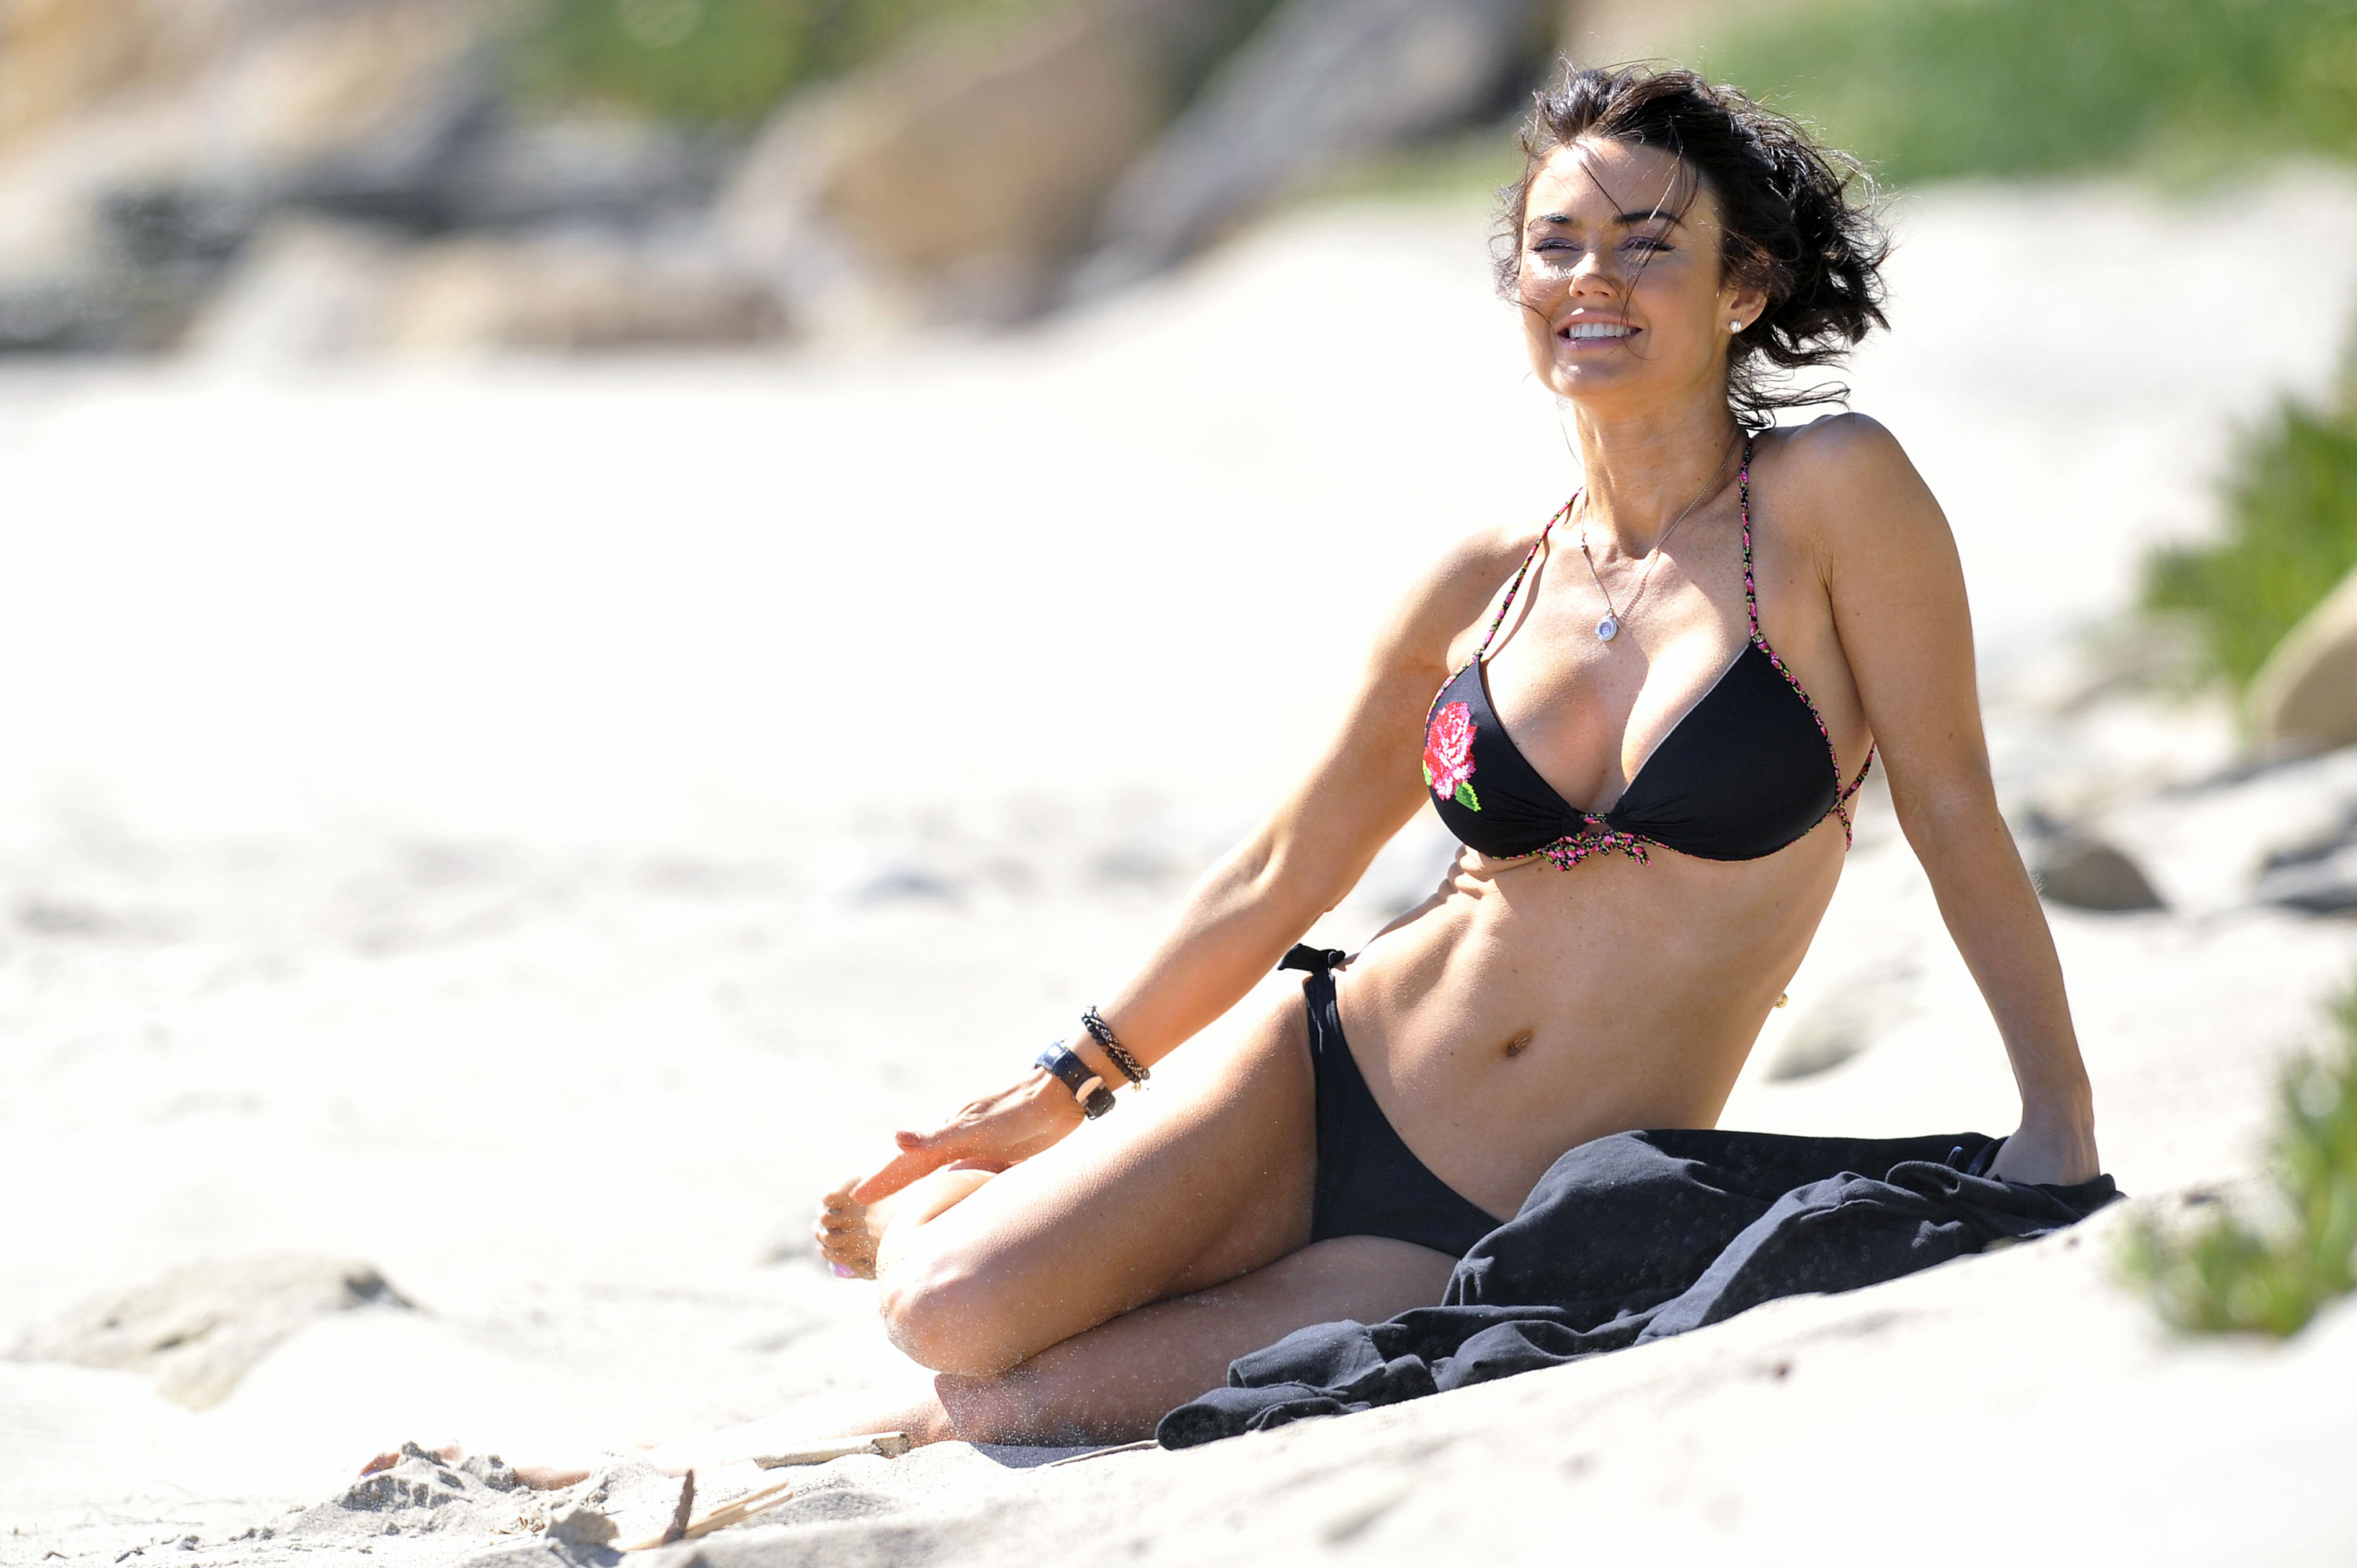 With you Kelly carlson bikini